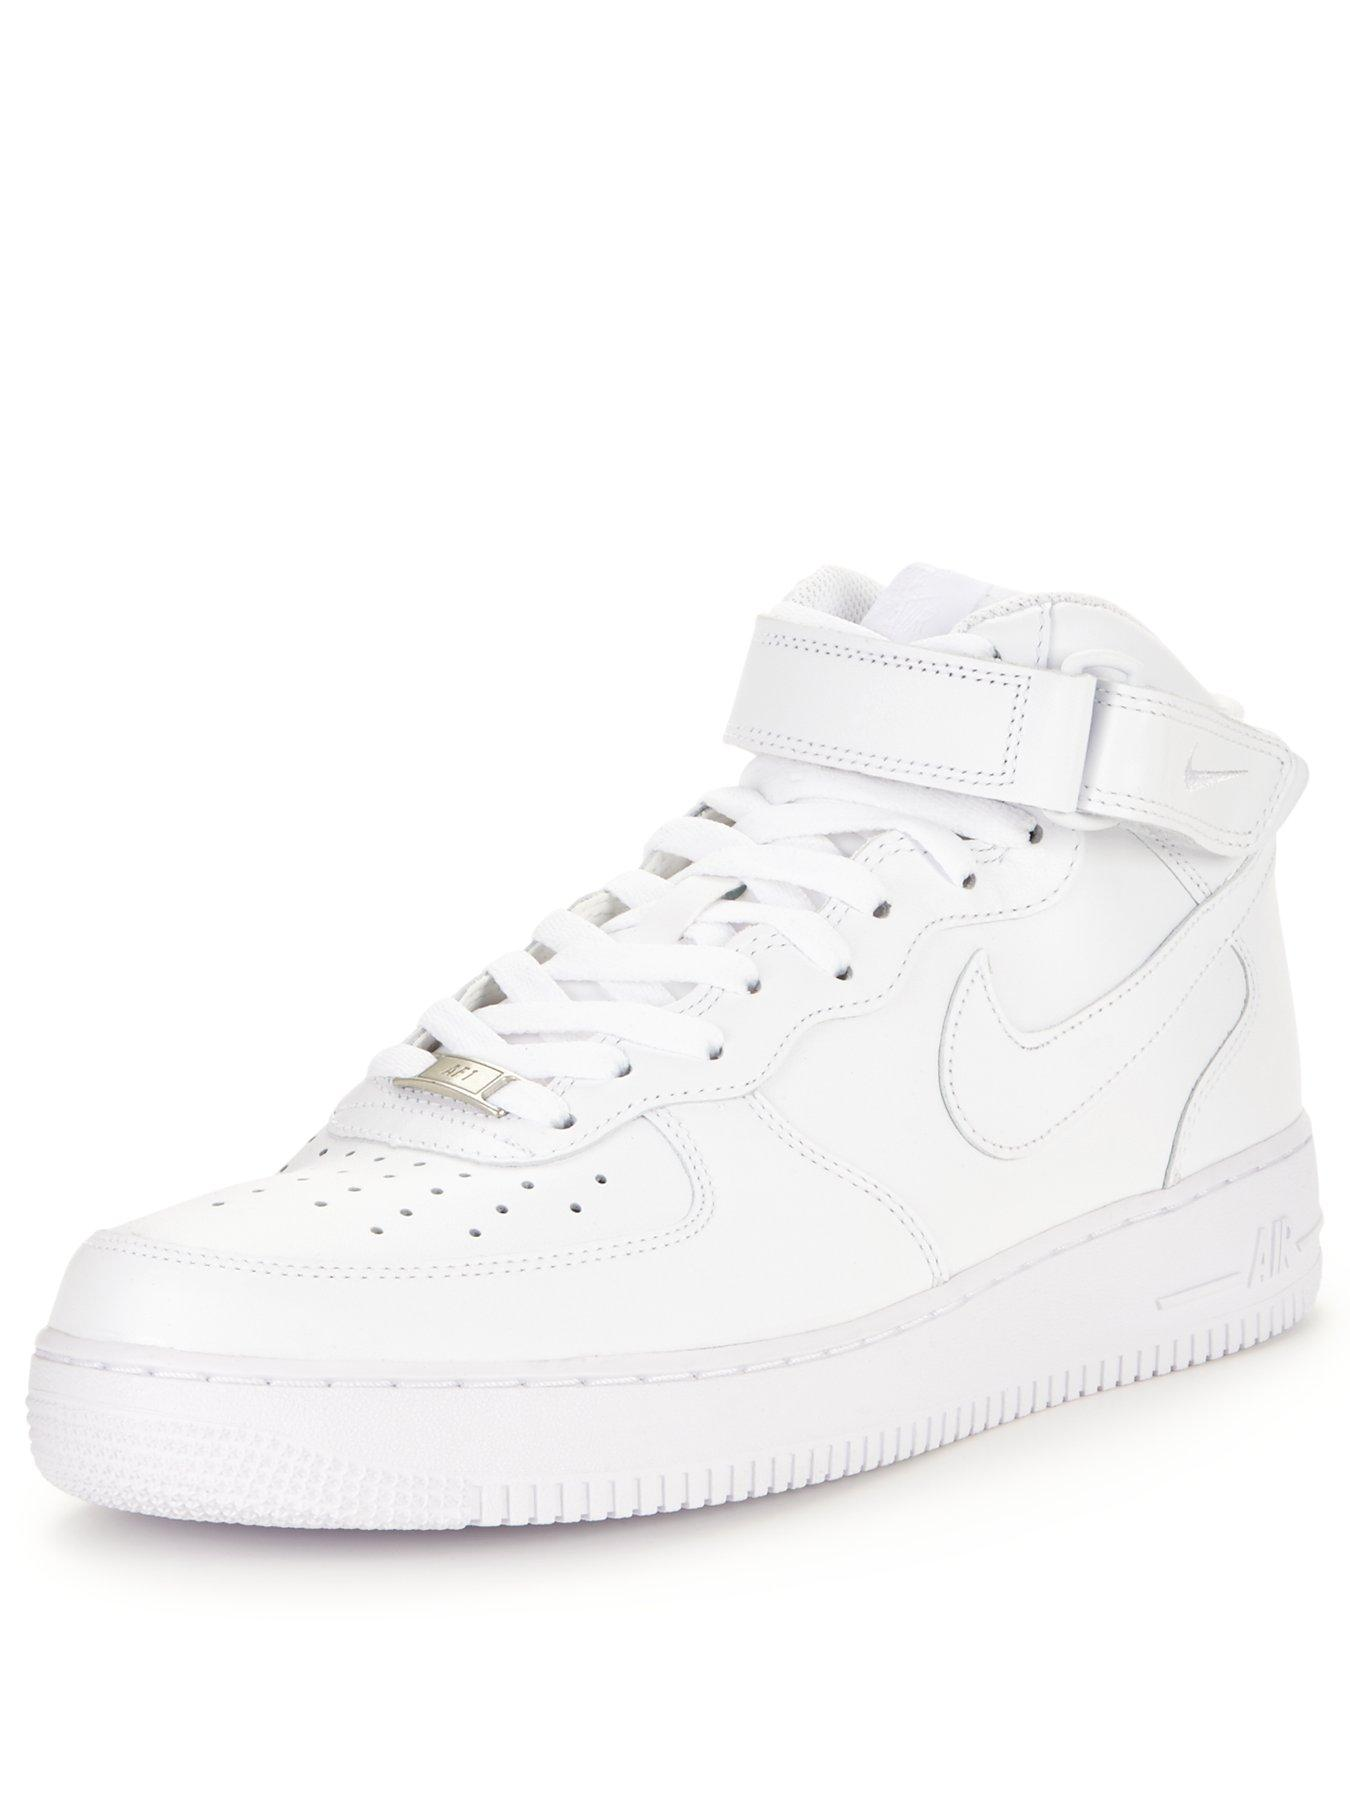 nike air force 1 mens air force 1 trainers very co uk Bright Orange Nike's nike air force 1 mid 07 leather